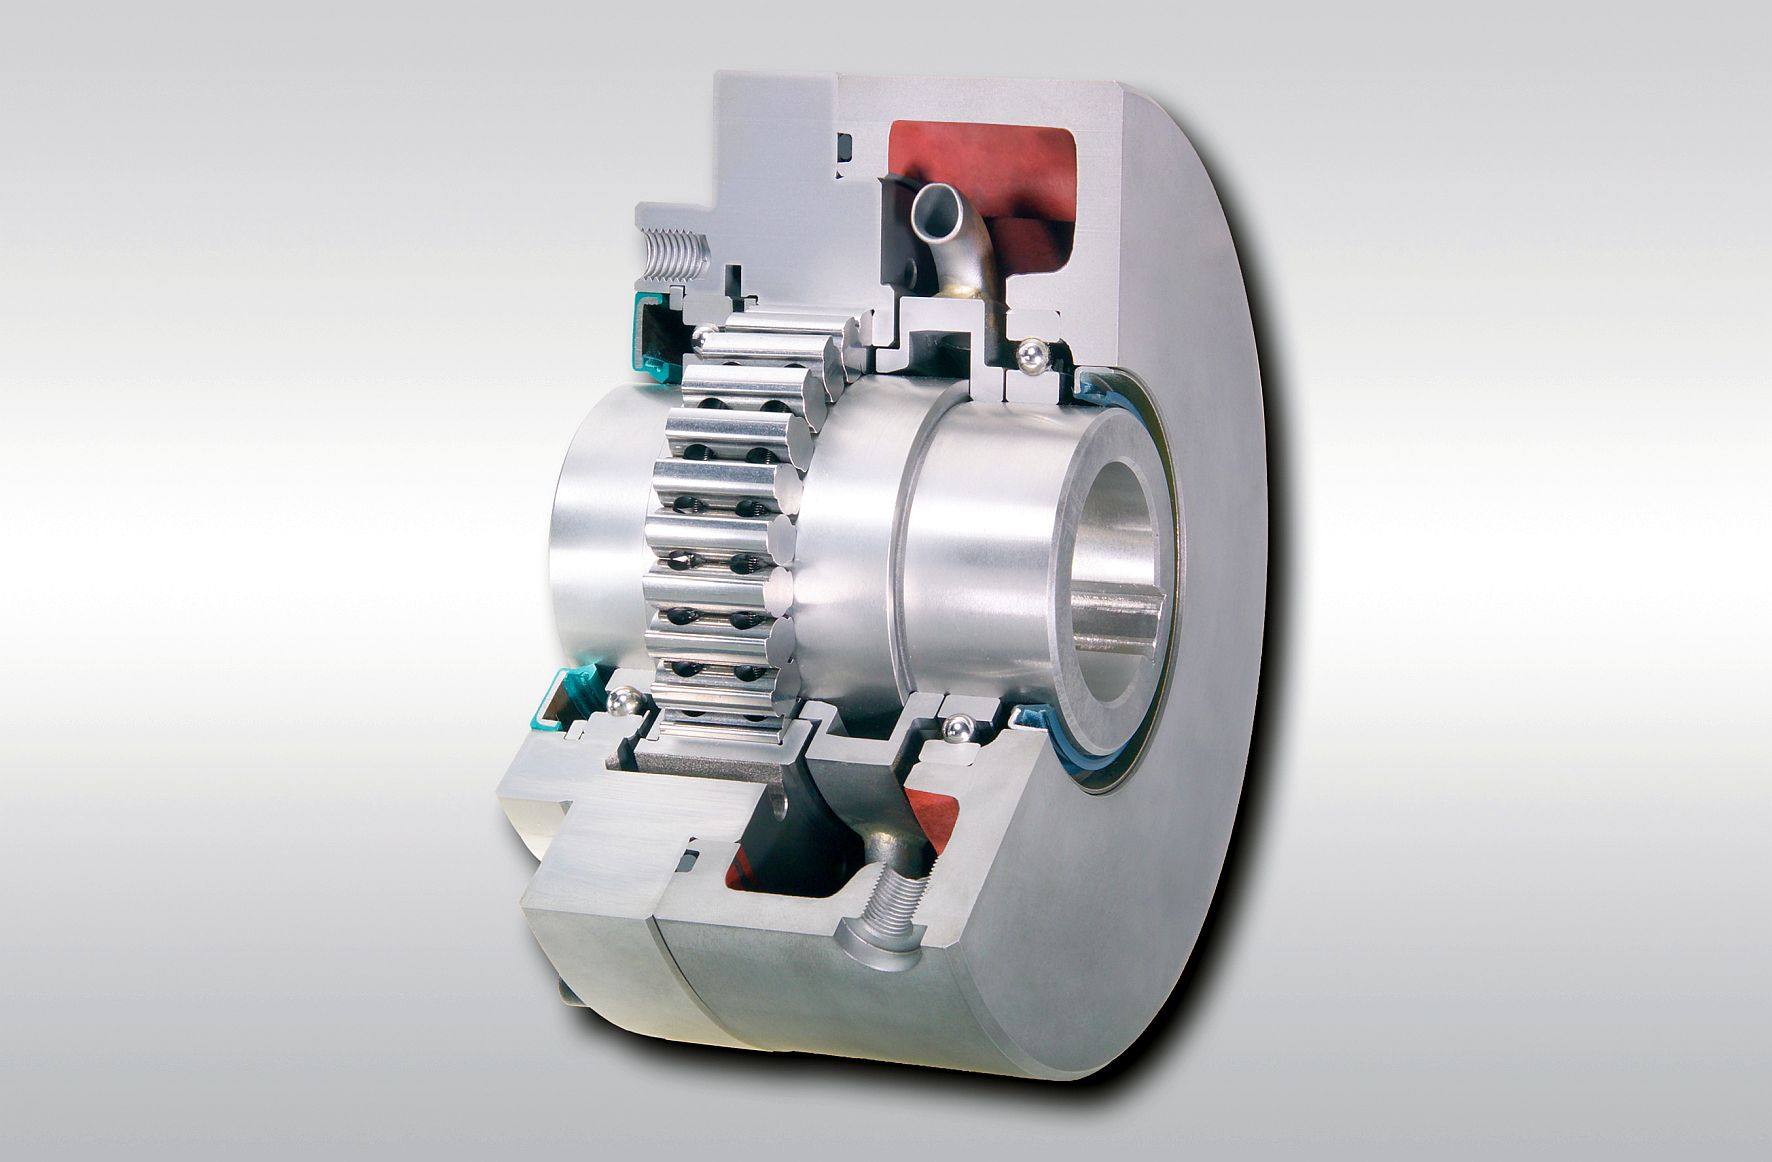 freewheels in RINGSPANN's FKh series have proven themselves in hybrid drive solutions